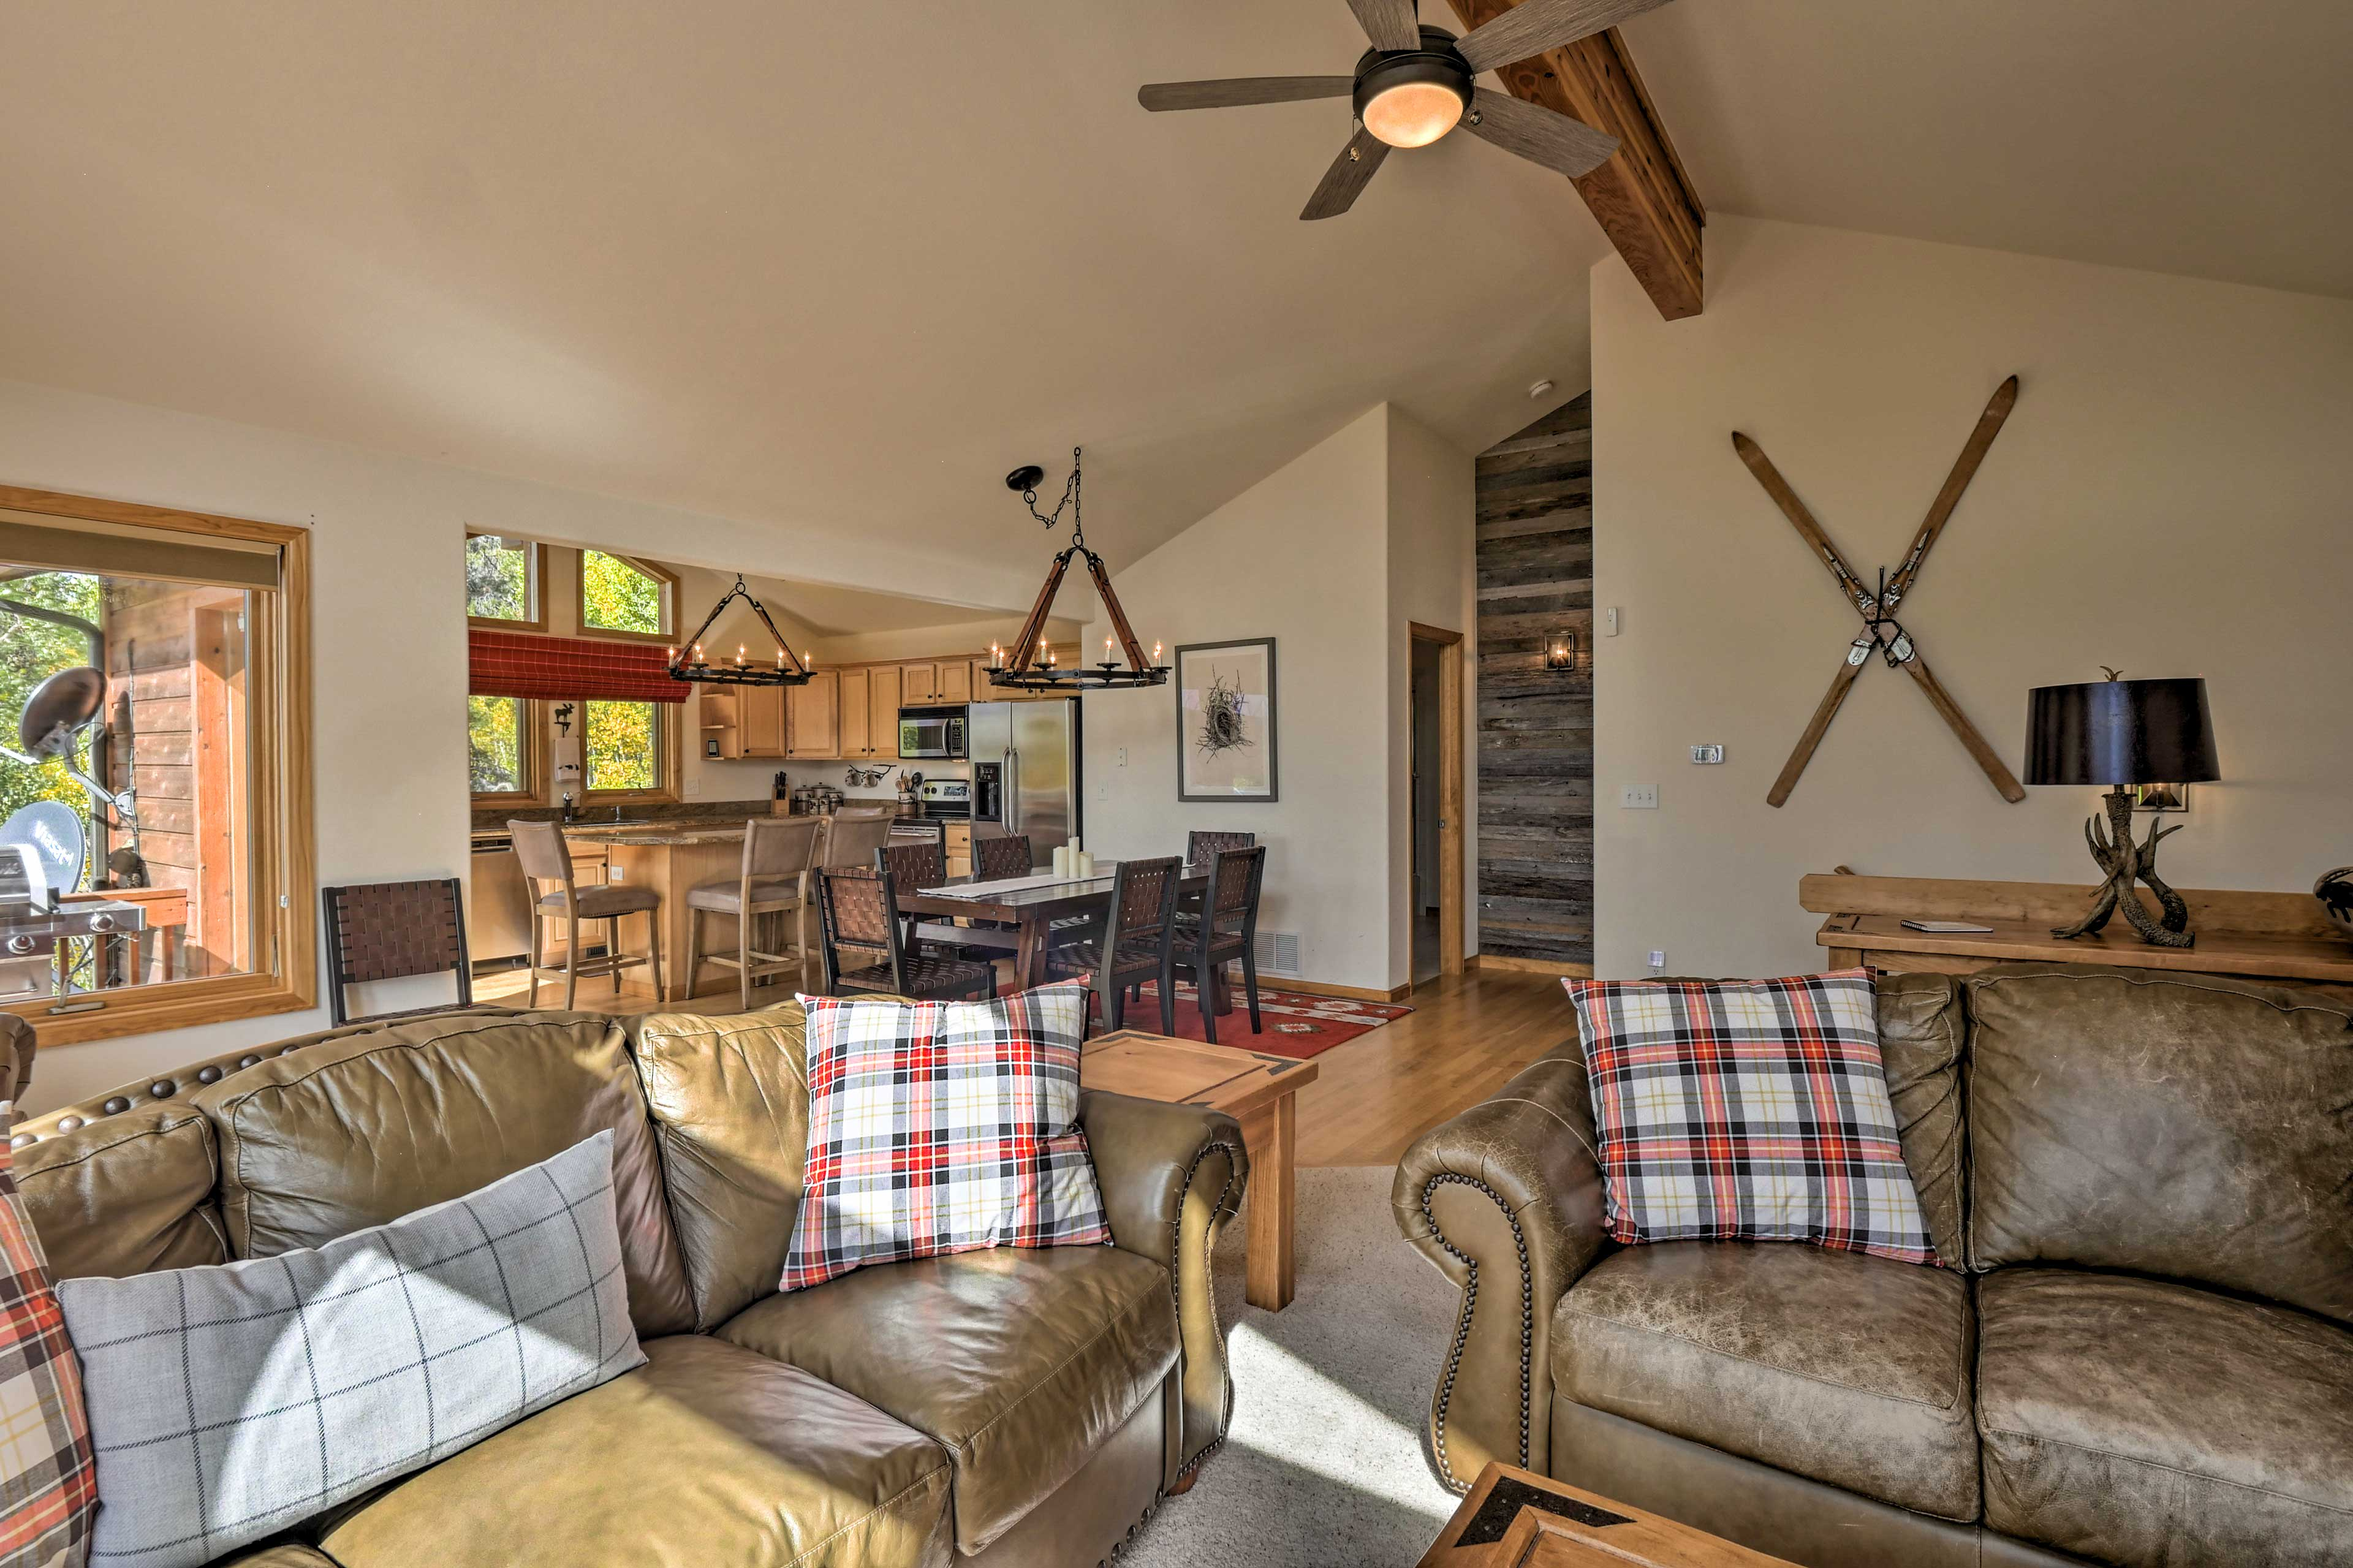 This home offers essential amenities like free WiFi and cable TV.